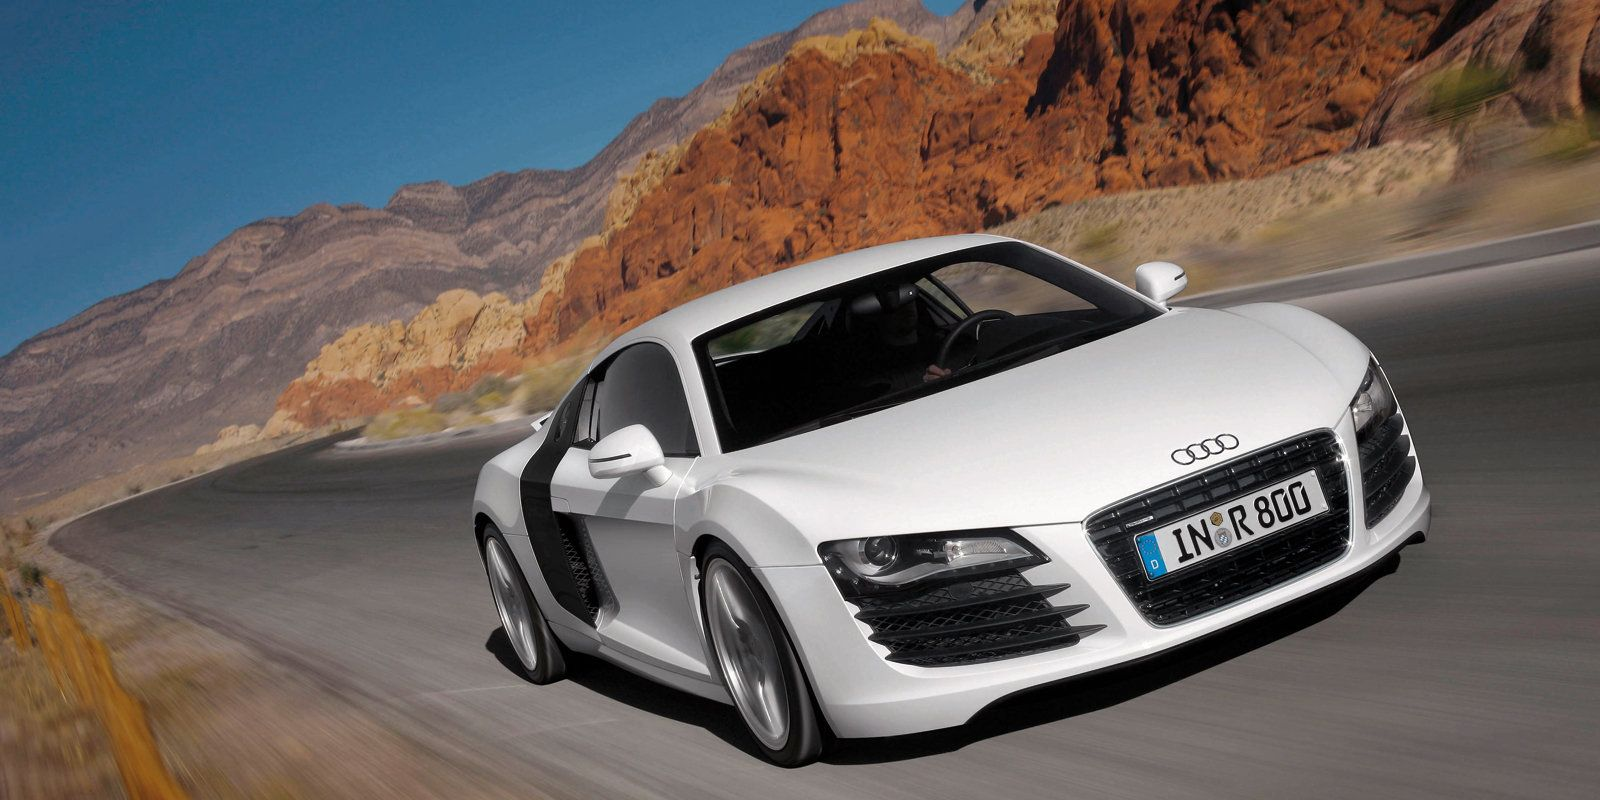 """<p>You can credit the LED running lights and the modern Audi grille with some of Audi's success in recent years, but without the R8, we can't imagine any of that would have been nearly as effective. <a href=""""http://www.roadandtrack.com/new-cars/road-tests/reviews/a13450/2008-audi-r8/"""" target=""""_blank"""">The R8 proved Audi</a> could build a real supercar and got people to pay attention to the company.</p>"""